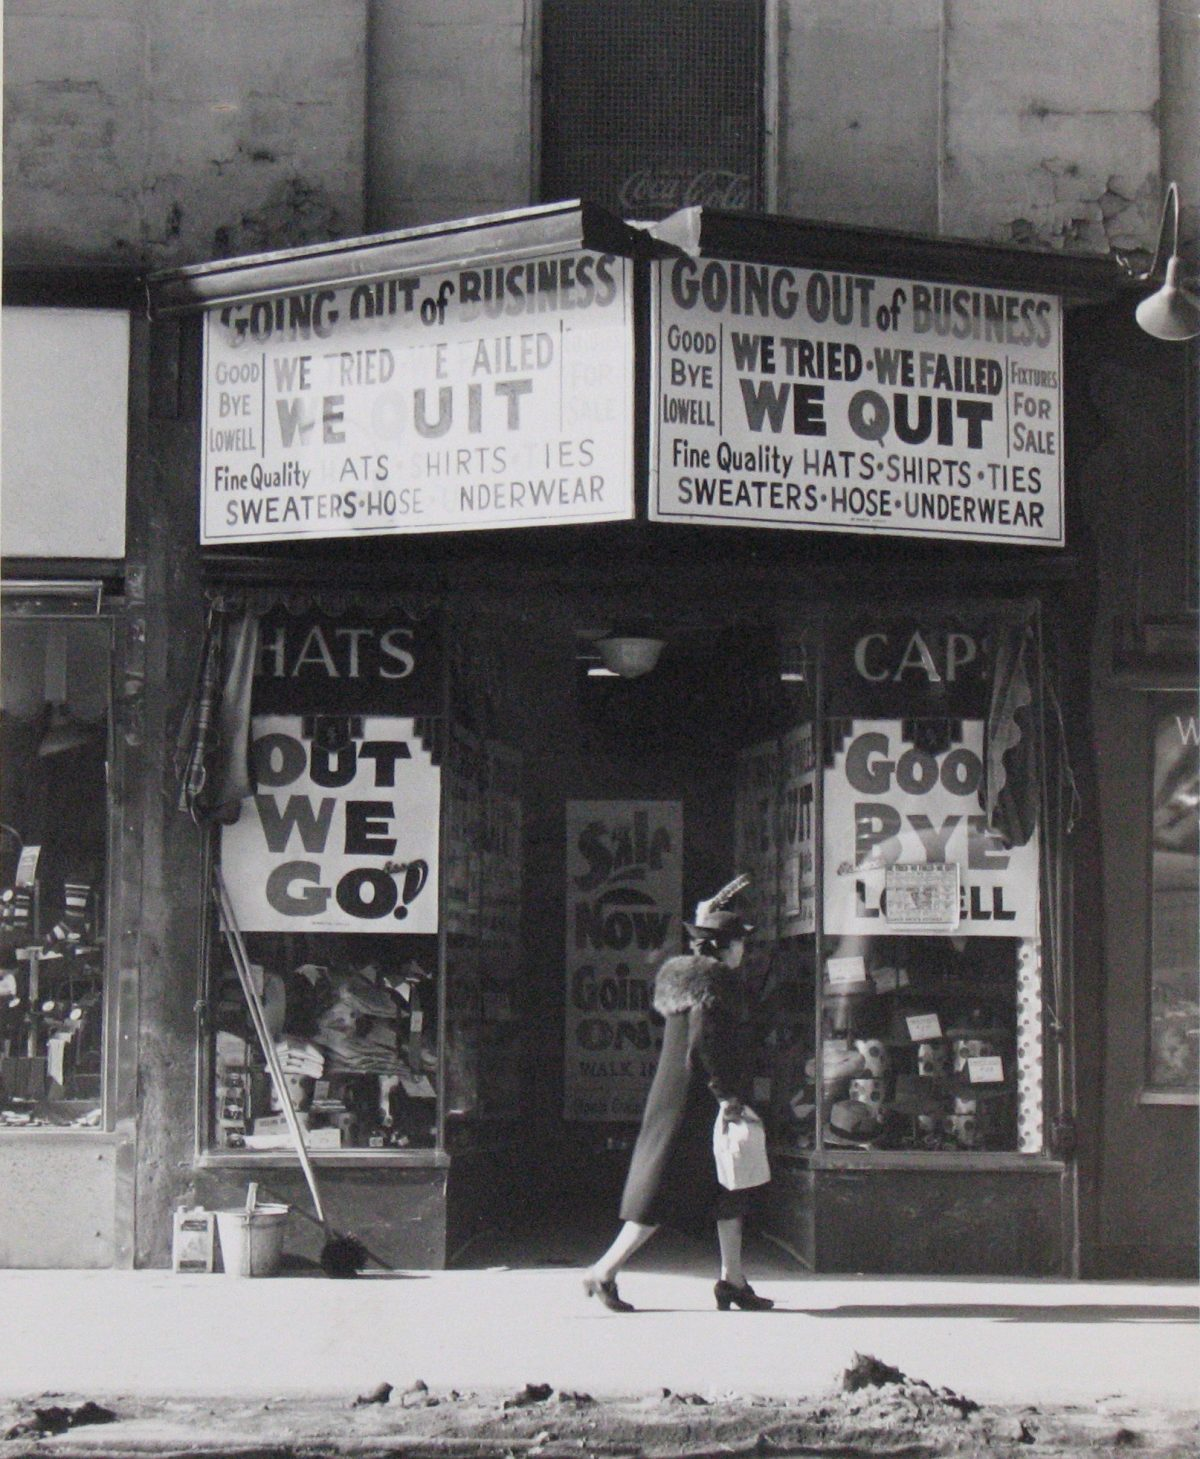 Store going out of business. Lowell, Massachusetts Jan 1941